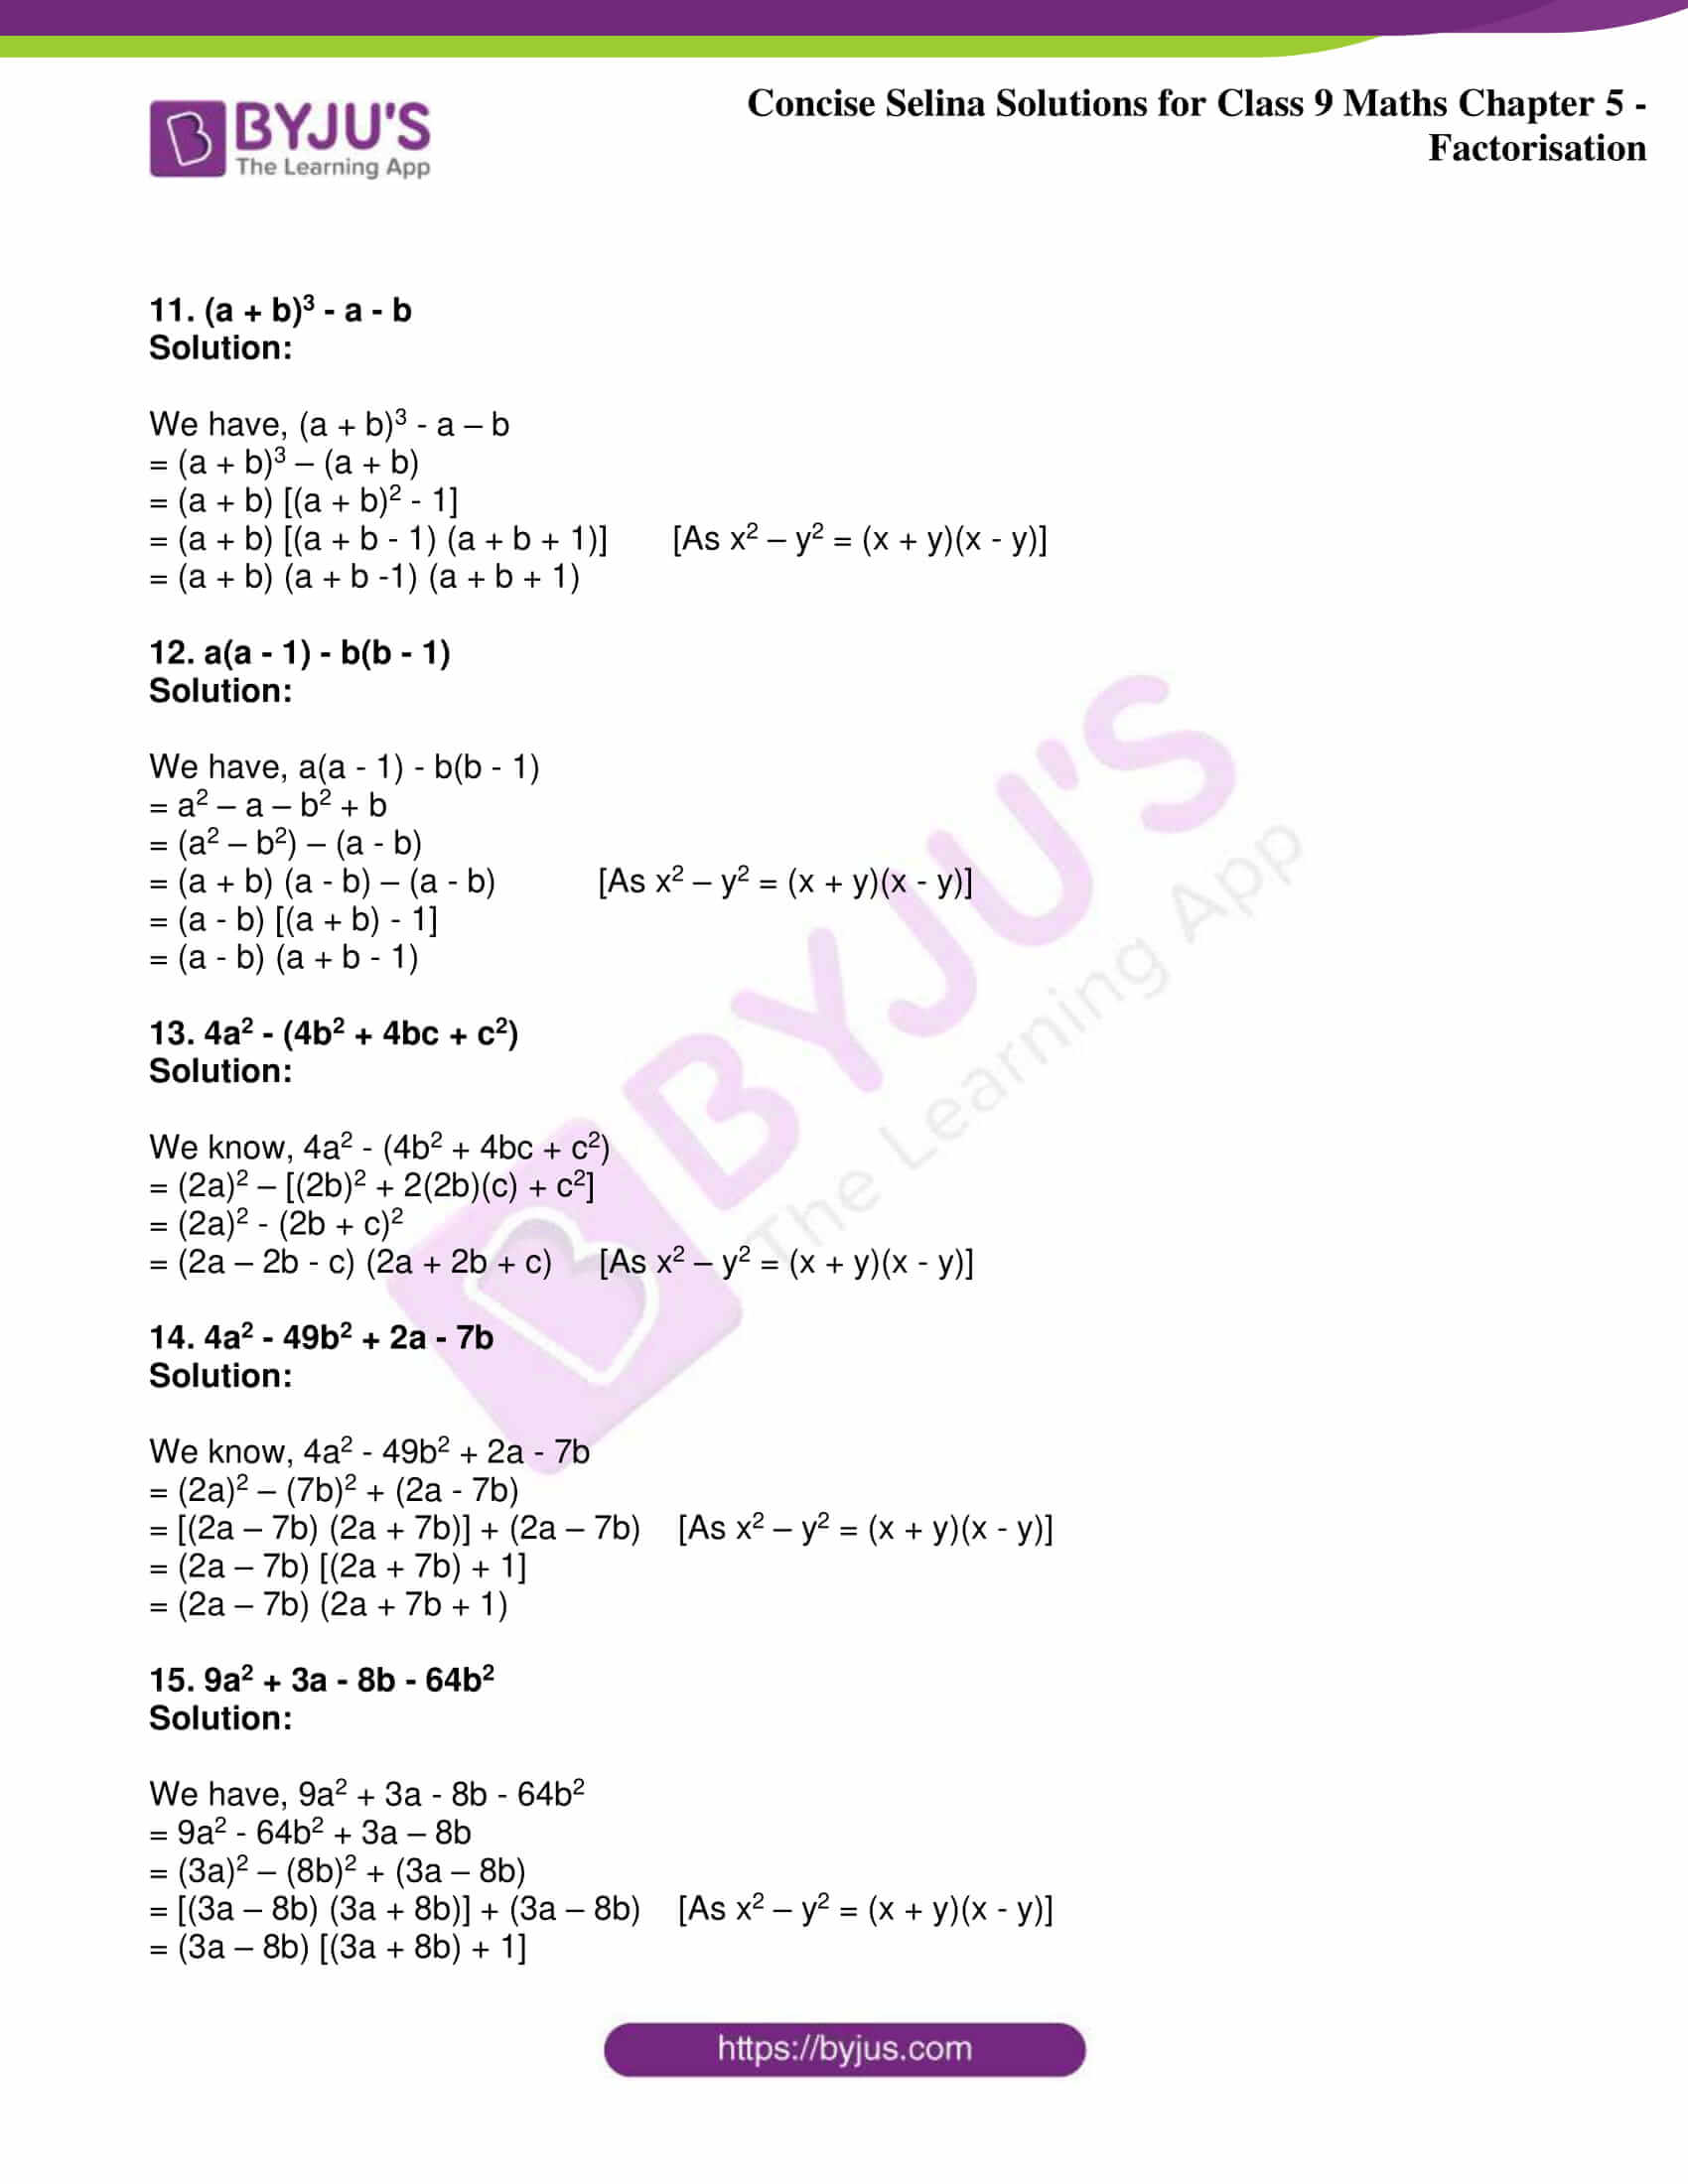 icse class 9 maths may10 selina solutions chapter 5 factorisation 15